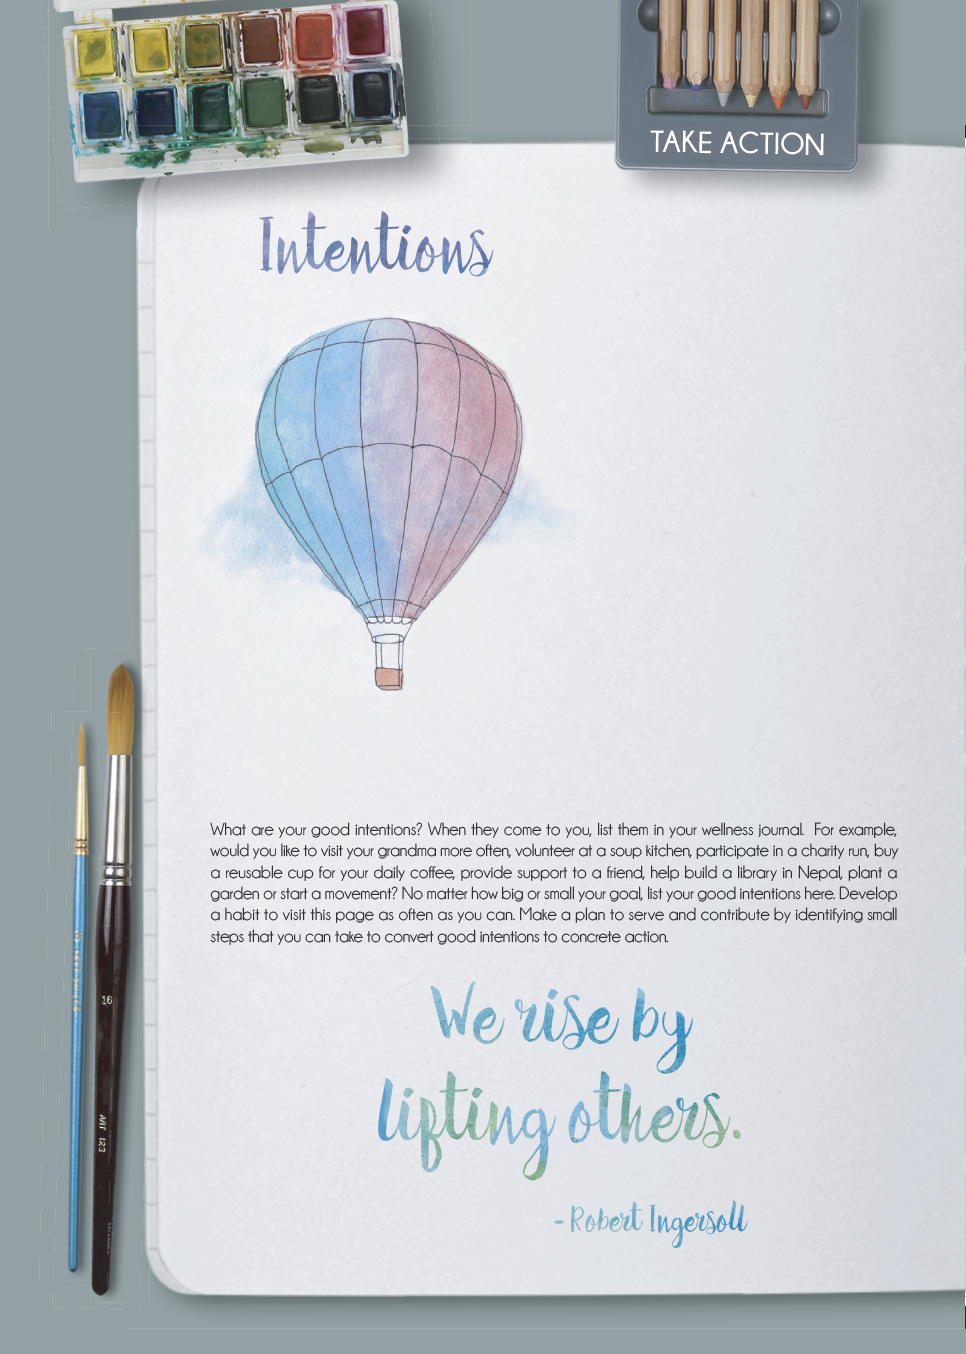 My Wellness Journal helps you plan intentional acts of kindness